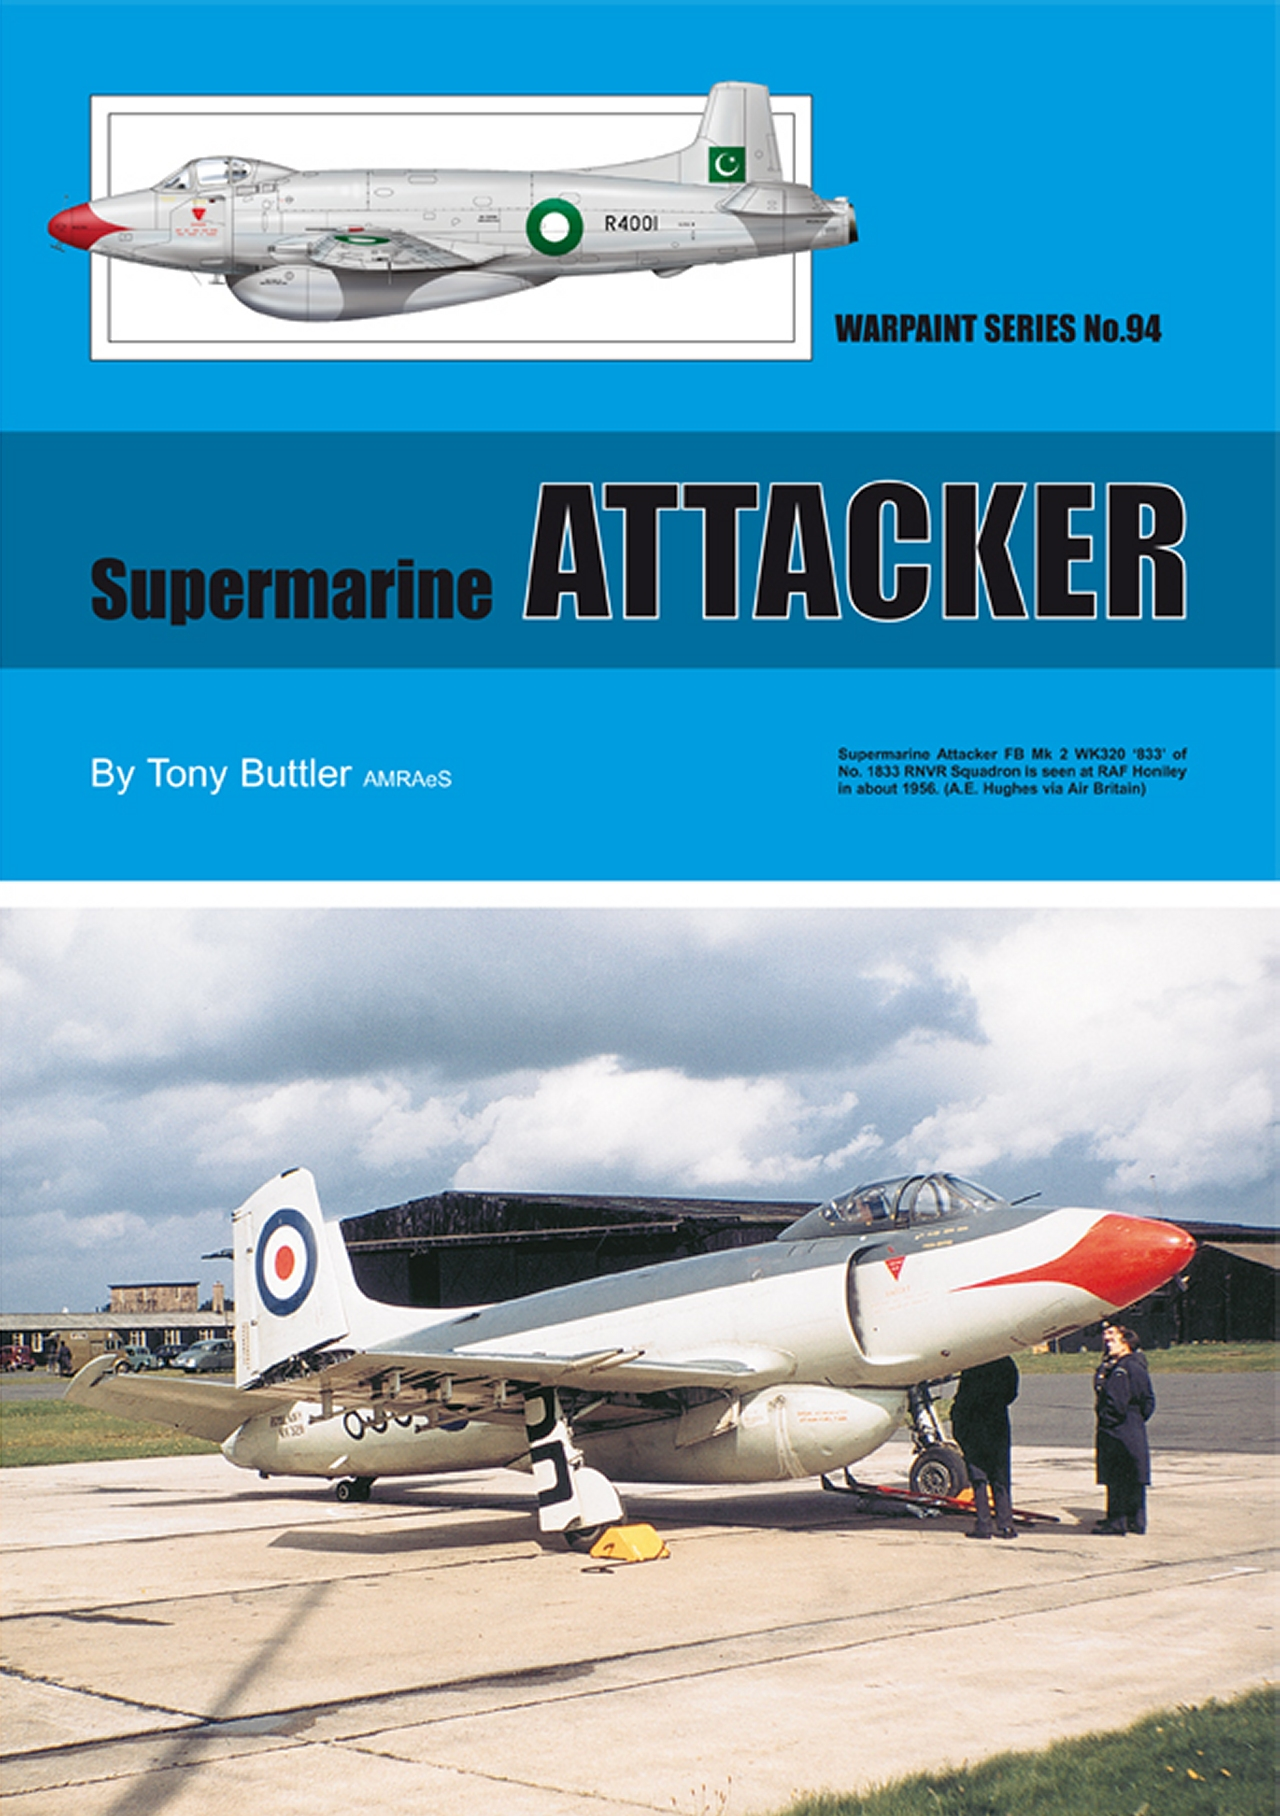 Guideline Publications No 94 Supermarine Attacker No. 94 in the Warpaint series